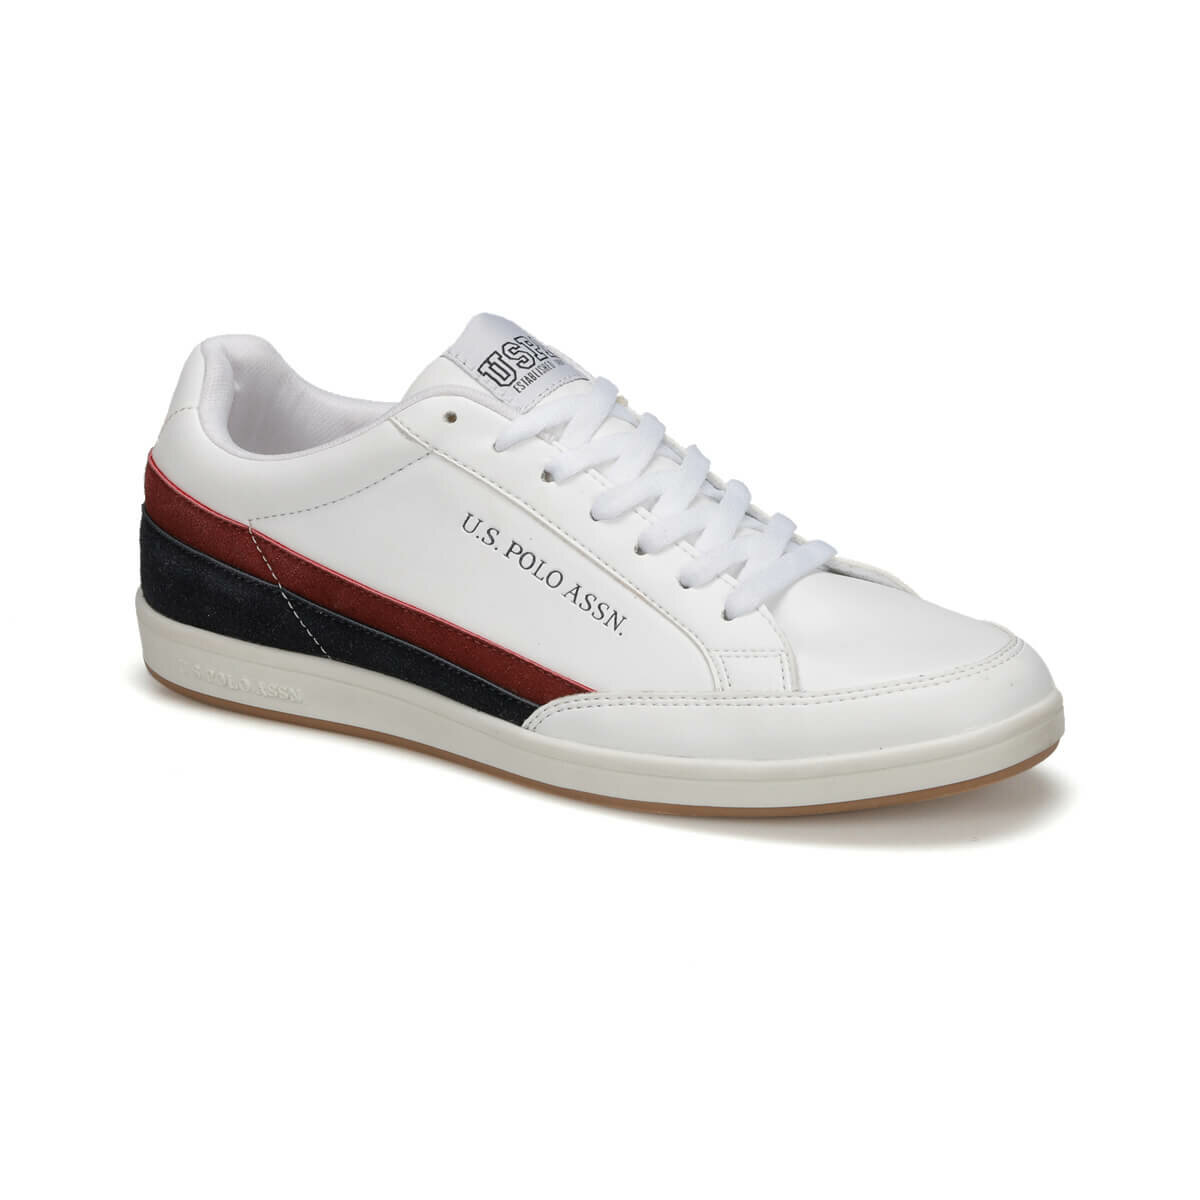 FLO CRAWFORD 9PR White Men 'S Sneaker Shoes U.S. POLO ASSN.